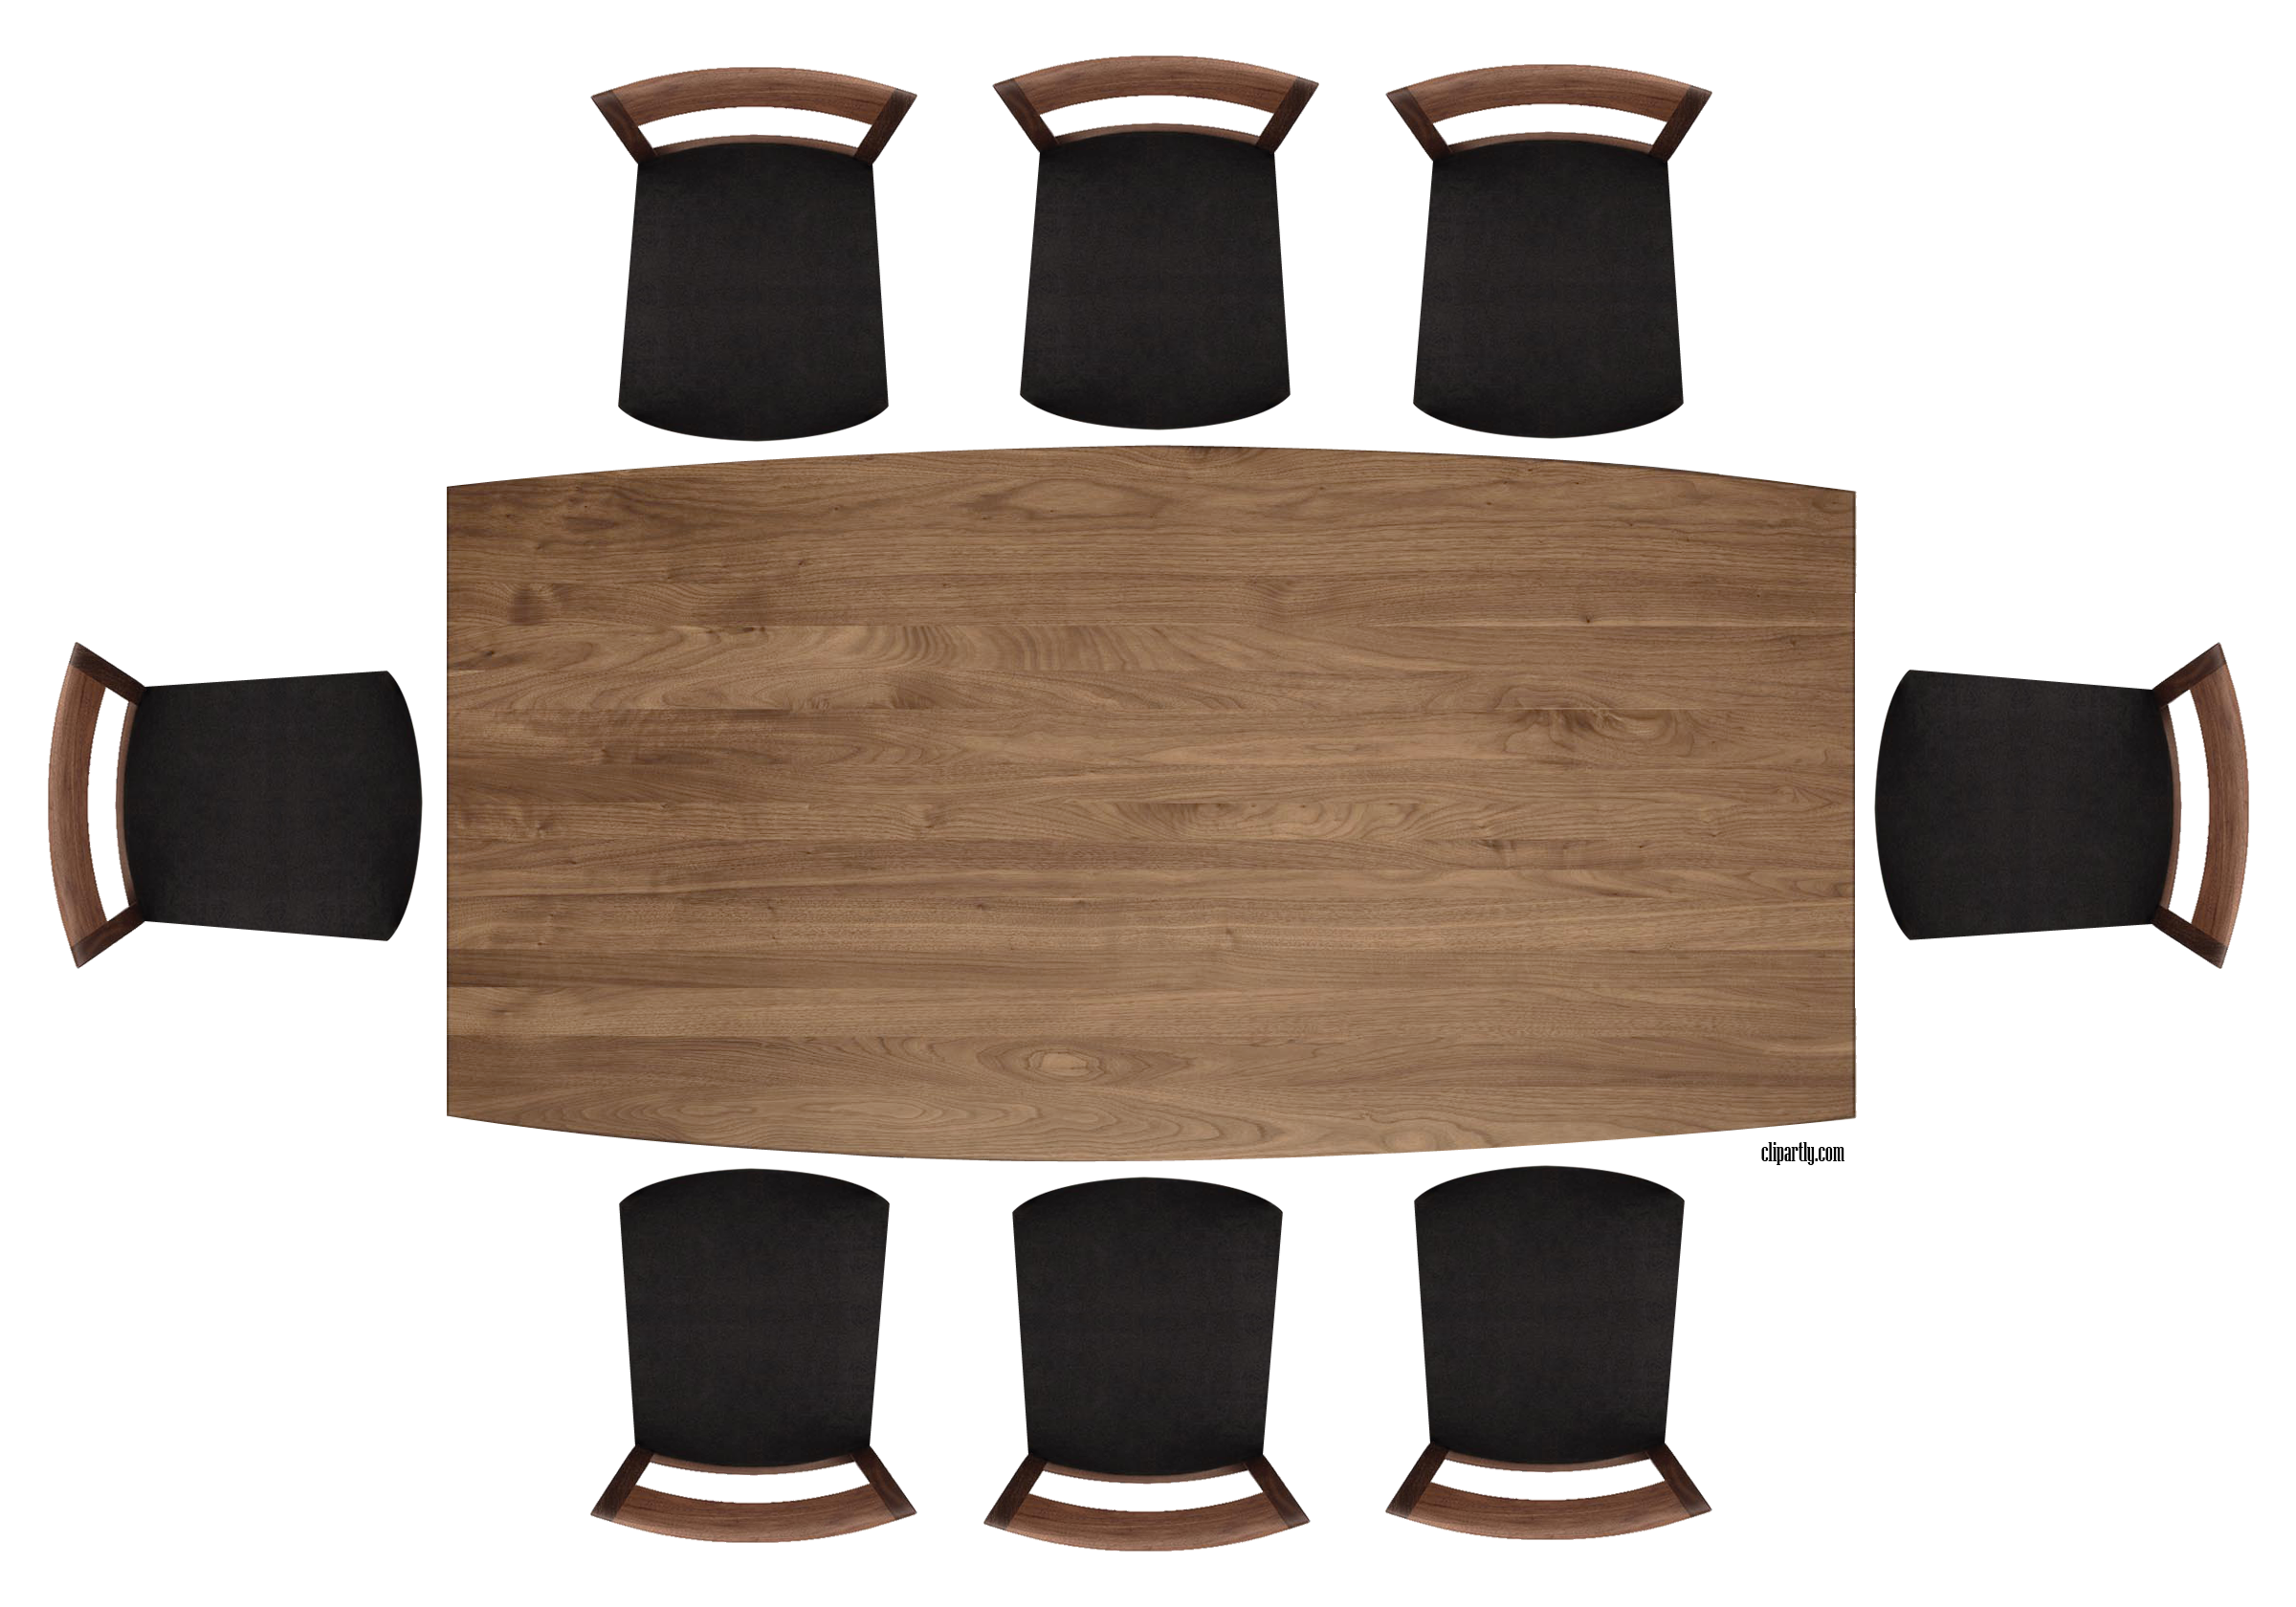 Furniture Clipart Top View Furniture Top View Transparent